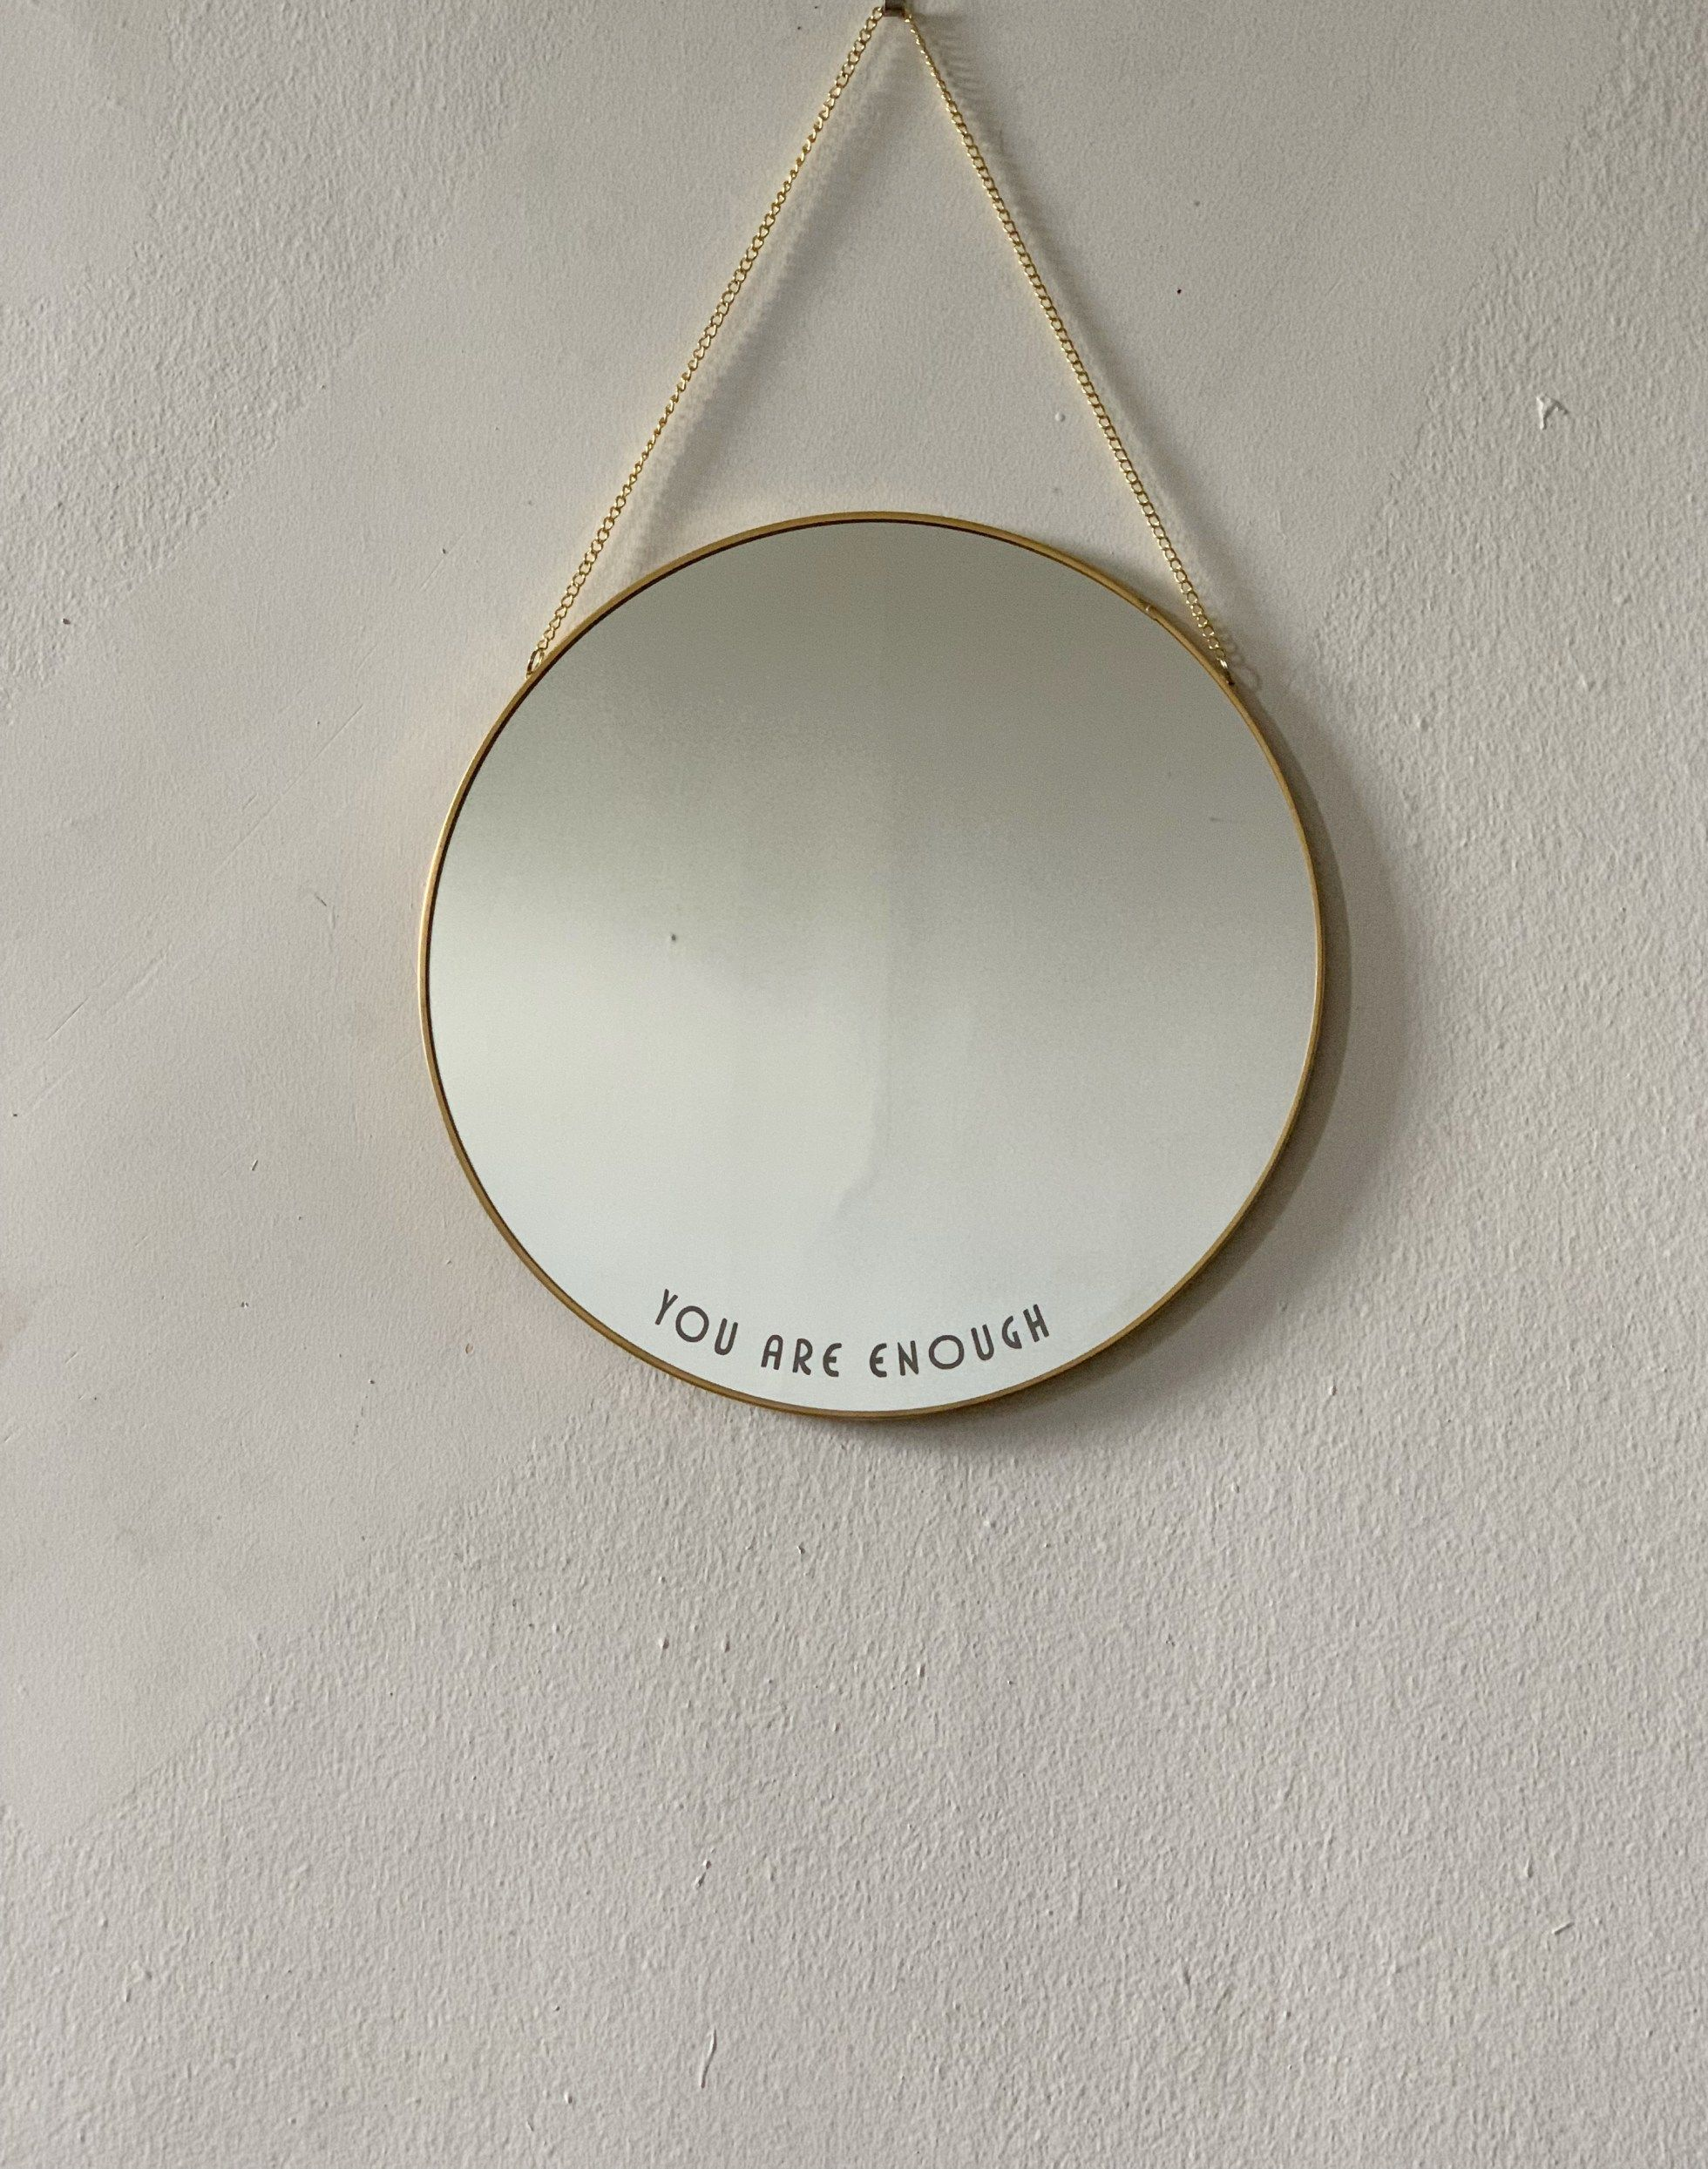 You Are Enough Glas Mirror Frame Mirroring And Paraphrasing